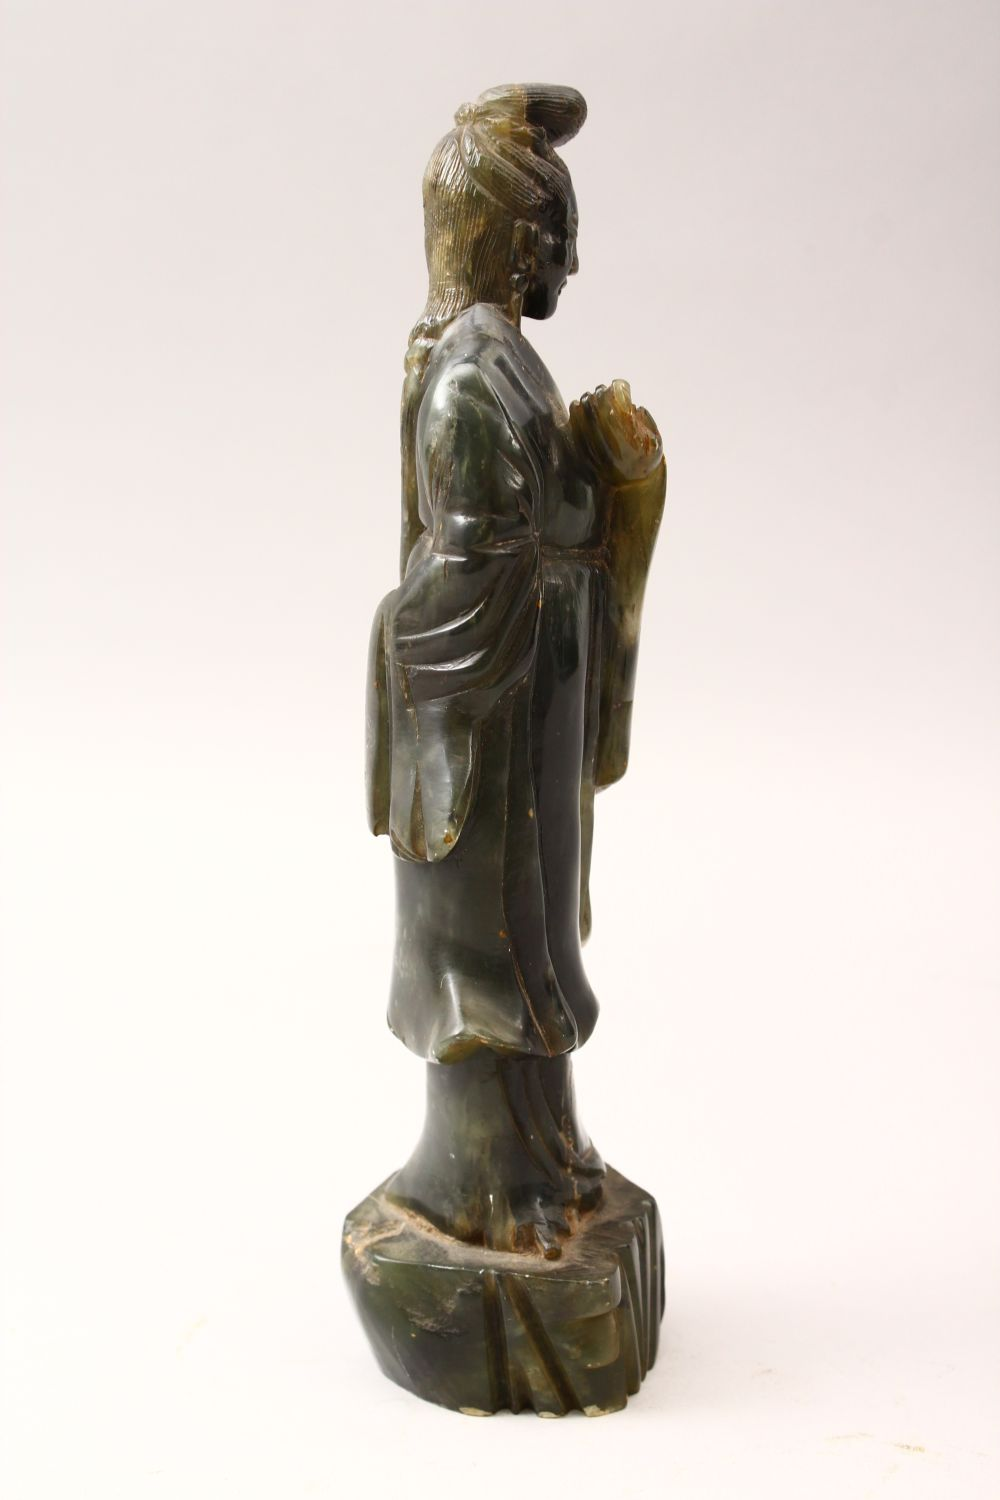 A 20TH CENTURY CHINESE CARVED JADE FIGURE OF GUANYIN, stood upon a stylized stump base holding a - Image 2 of 4